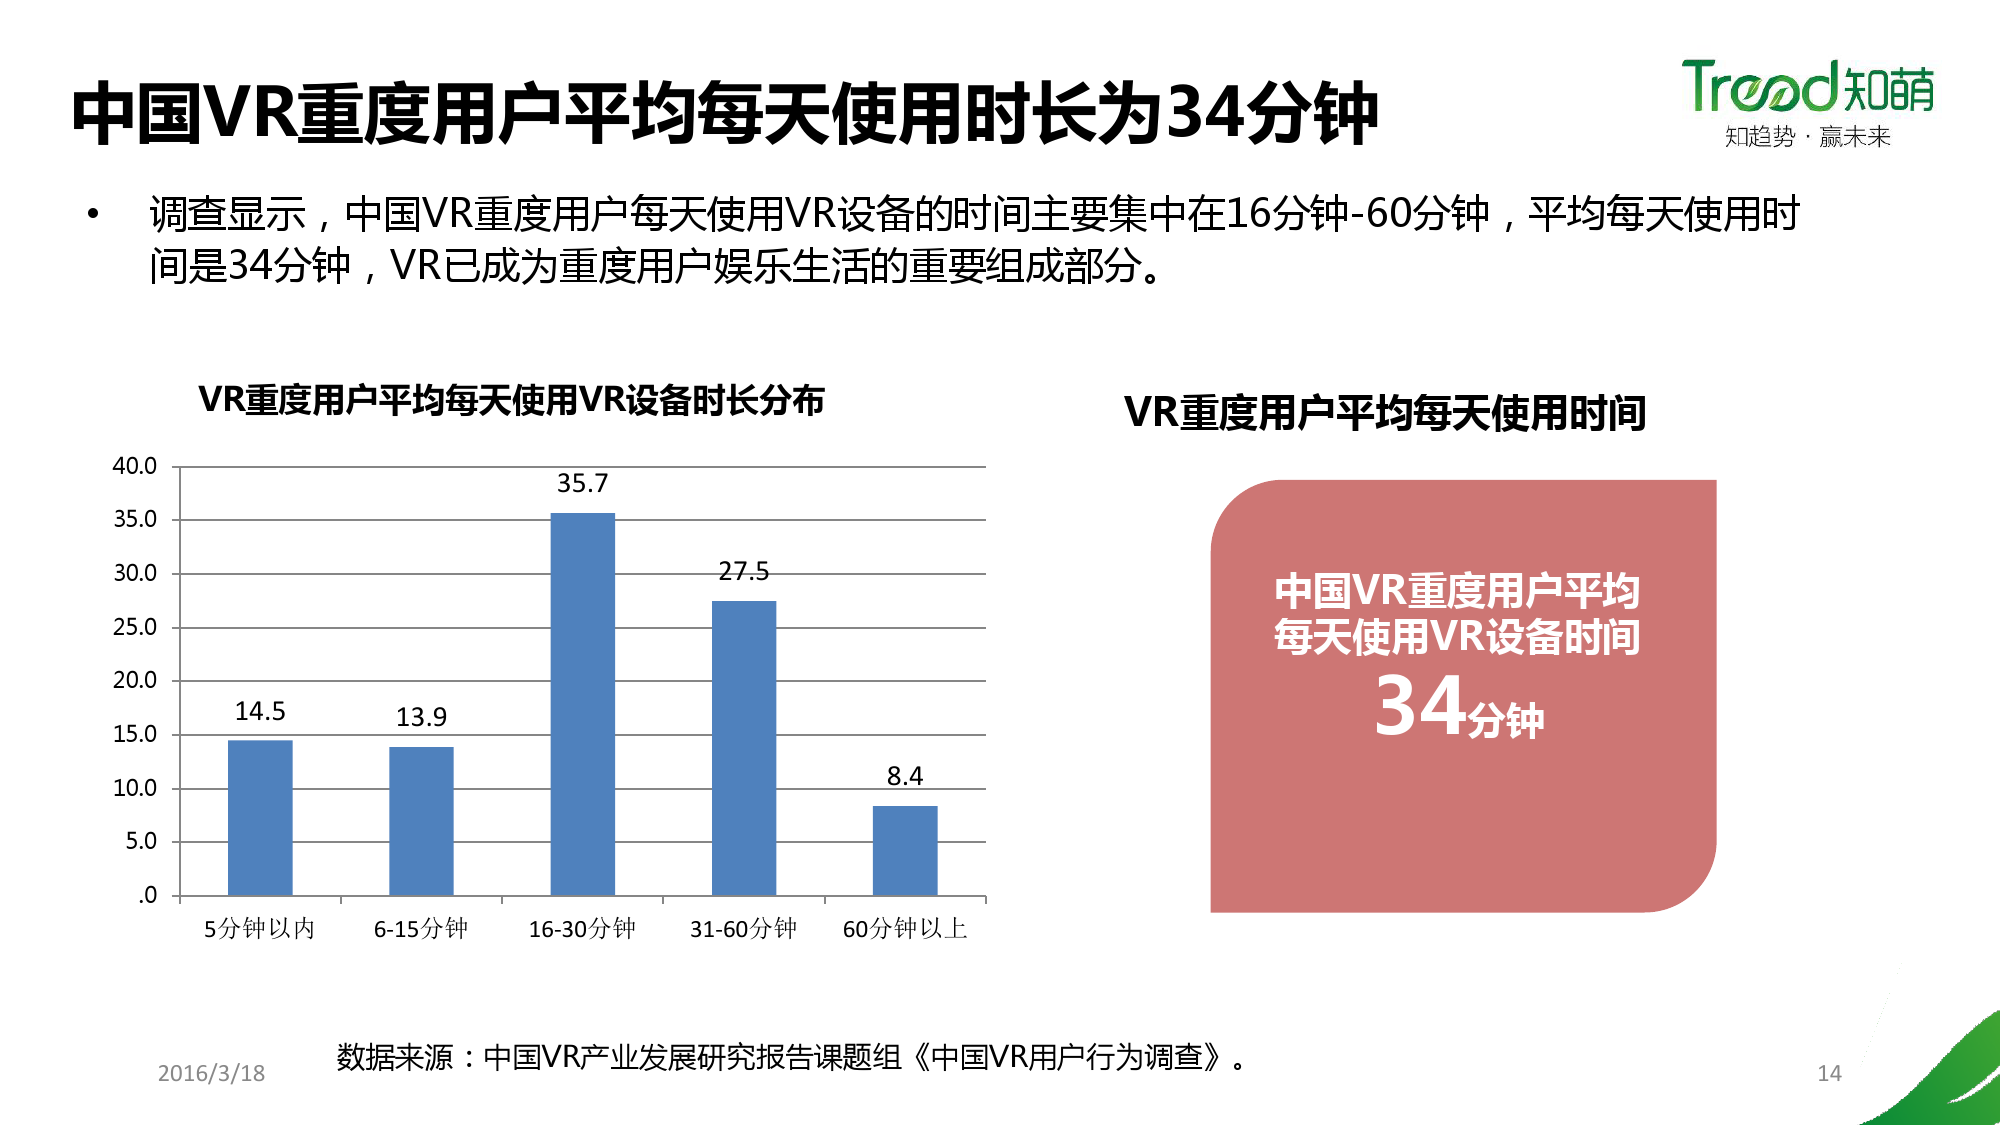 China VR user behavior research report _000014